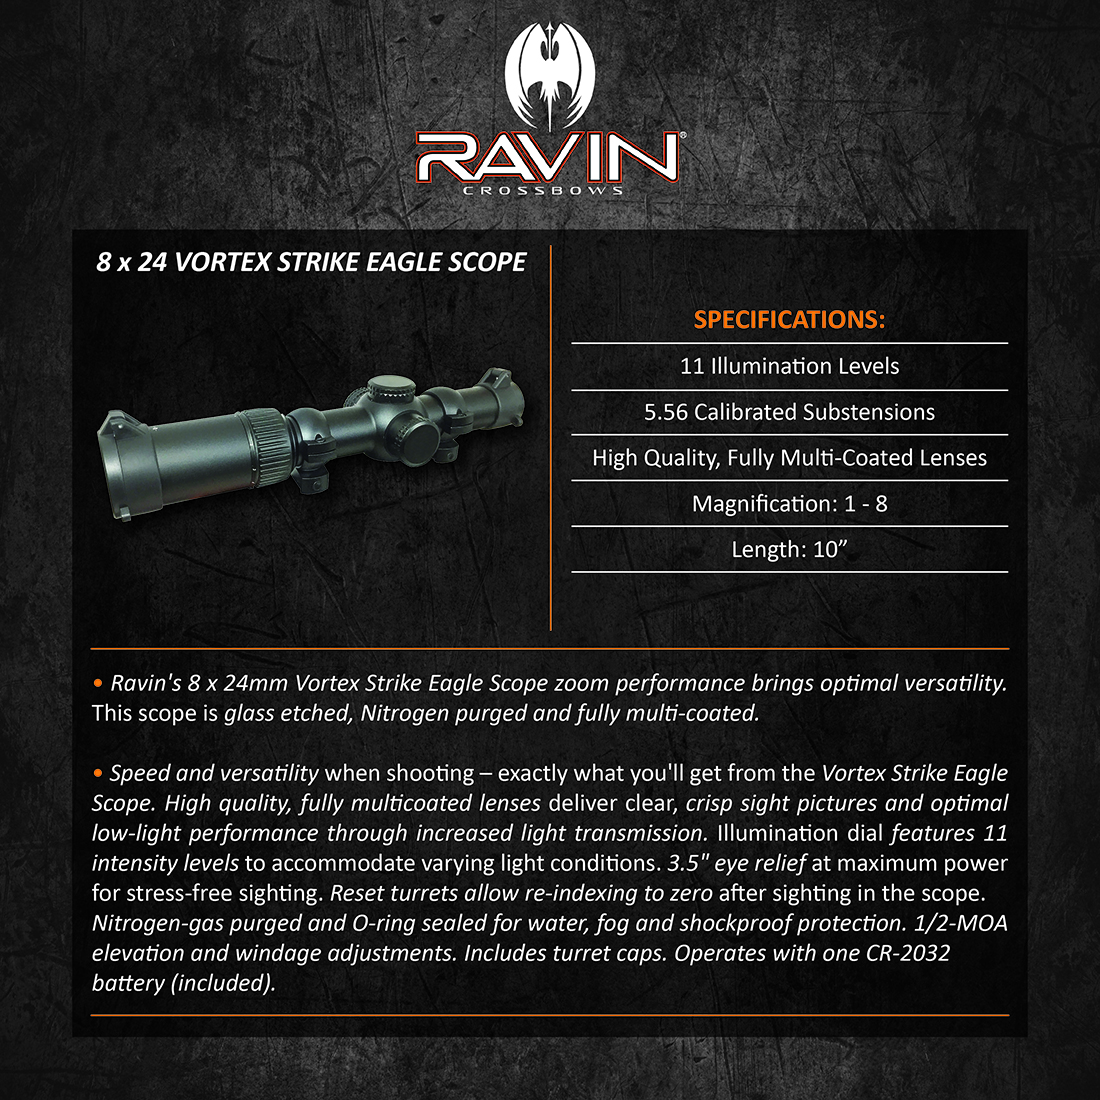 Ravin_8x24_Vortex_Strike_Eagle_Scope_Product_Description